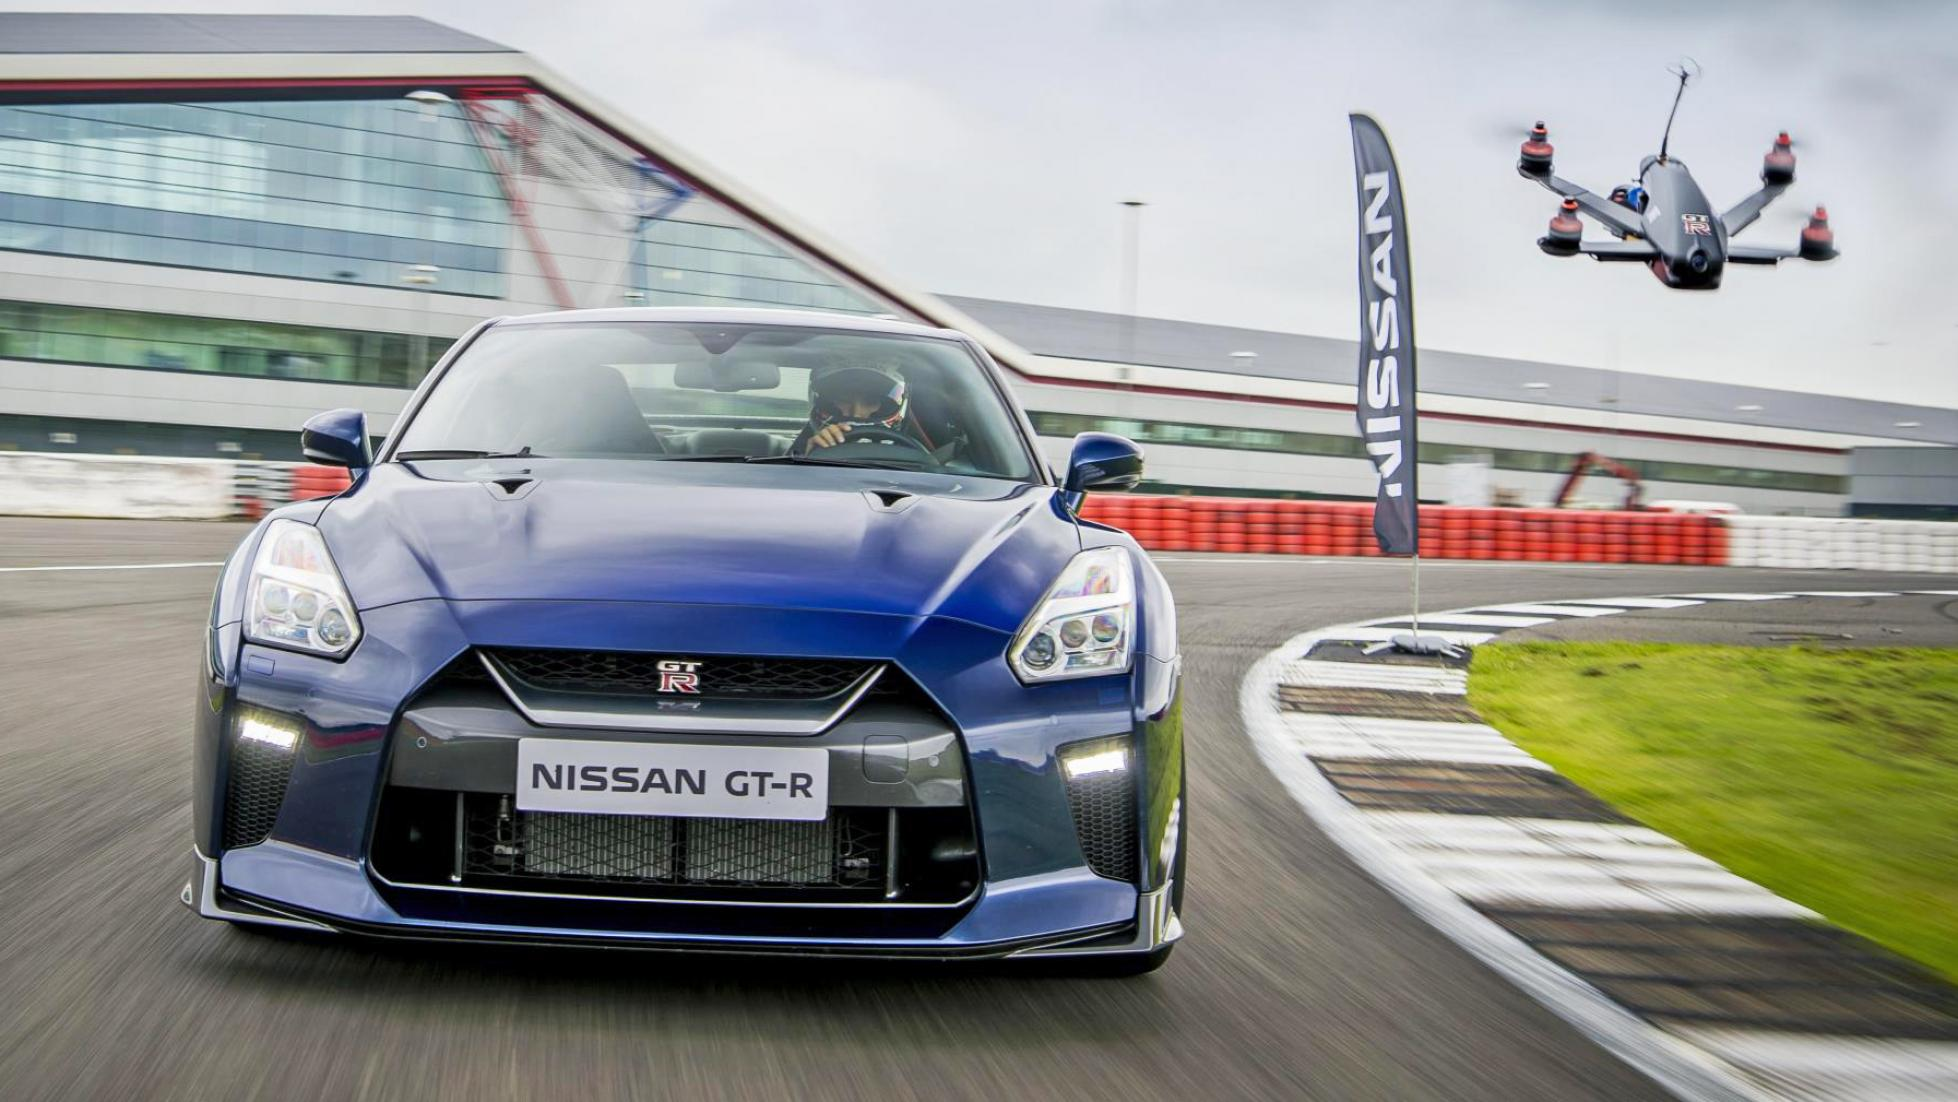 Watch This Nissan GT-R Race A Drone At 115 MPH